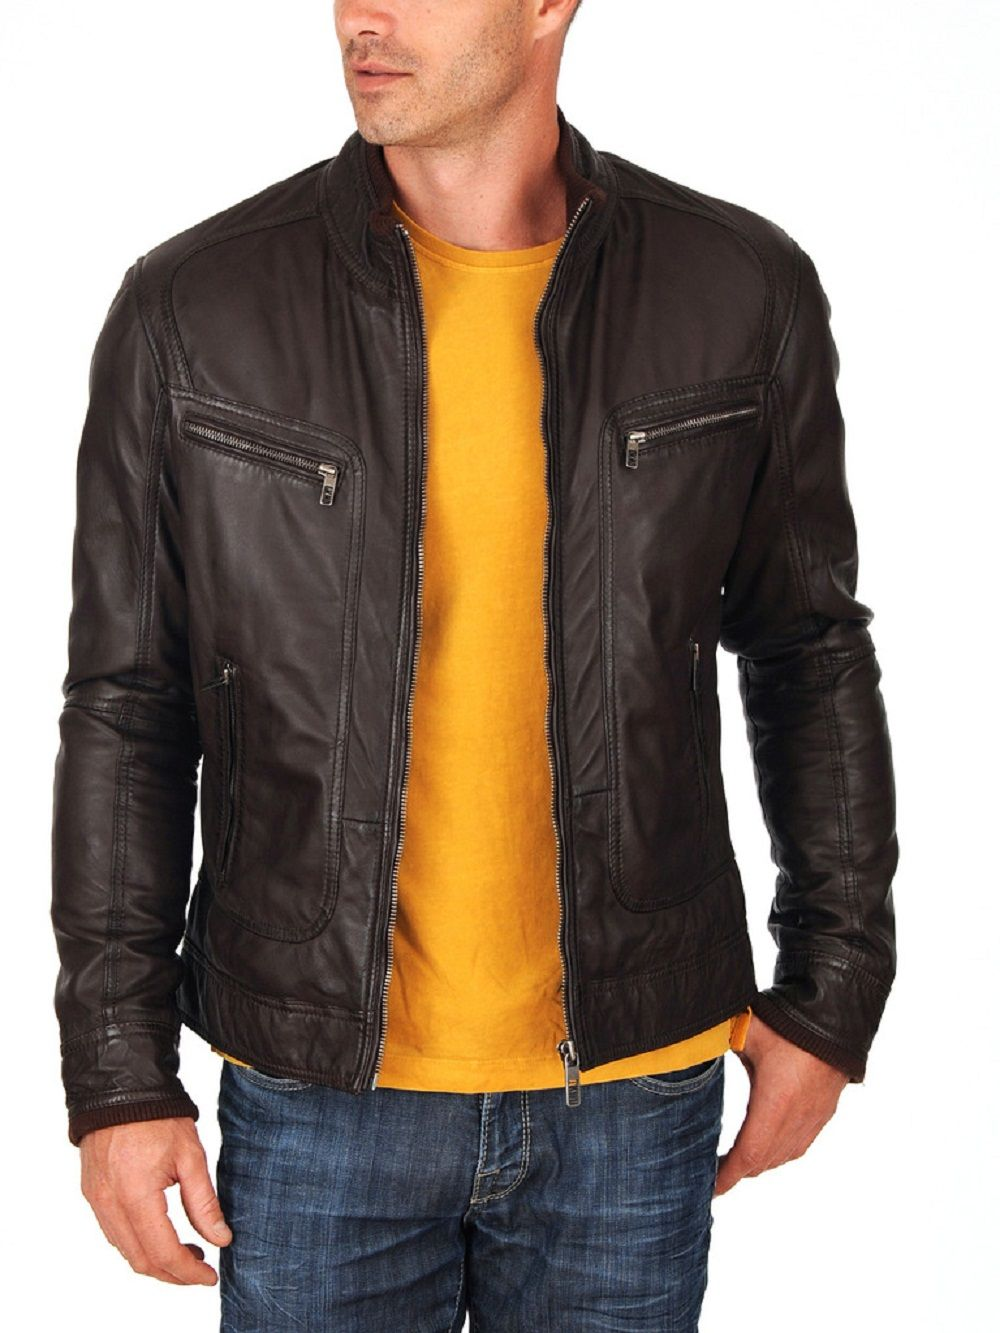 Customised  Leather Jacket for men's